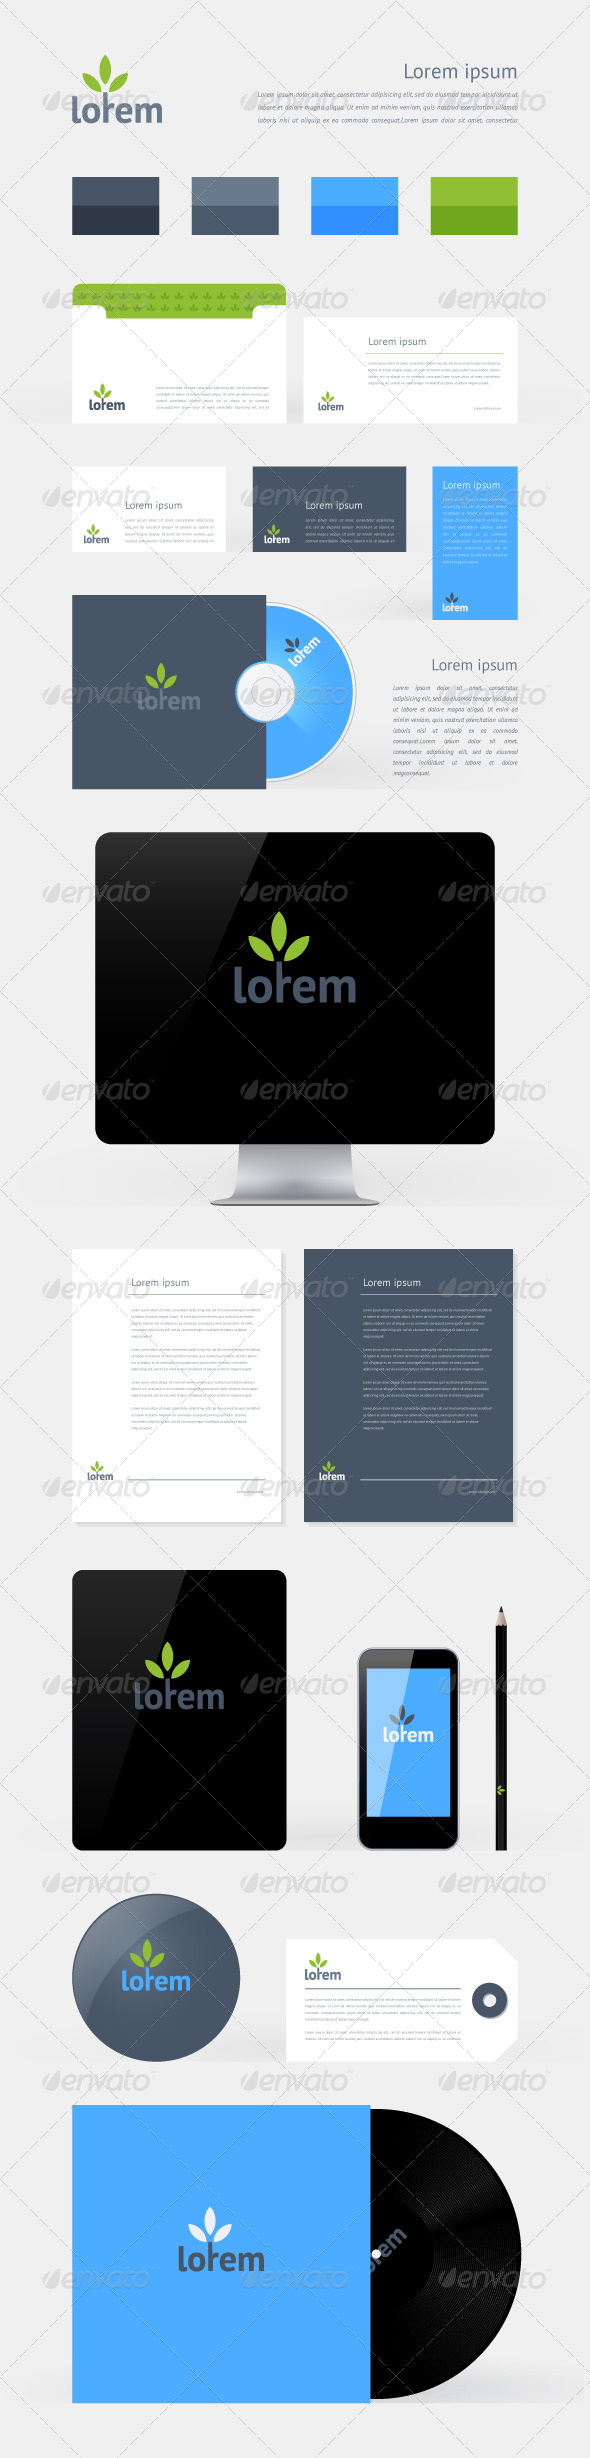 Stationery, Branding Mock-Up Template - Miscellaneous Vectors